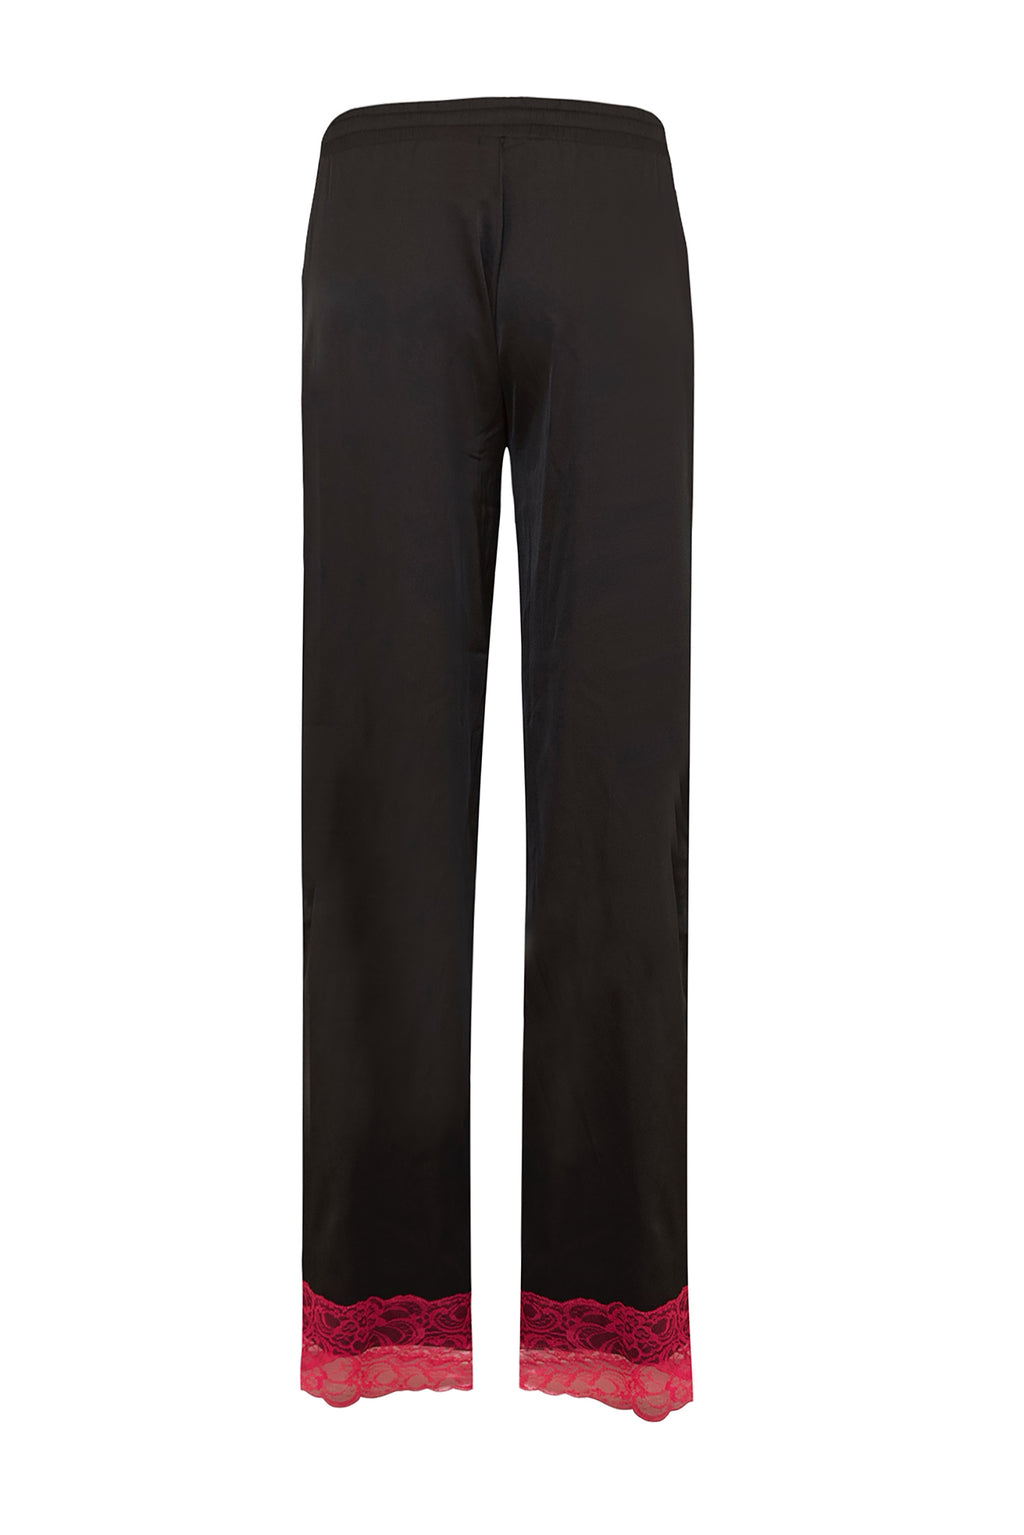 Black Satin Lace Trousers